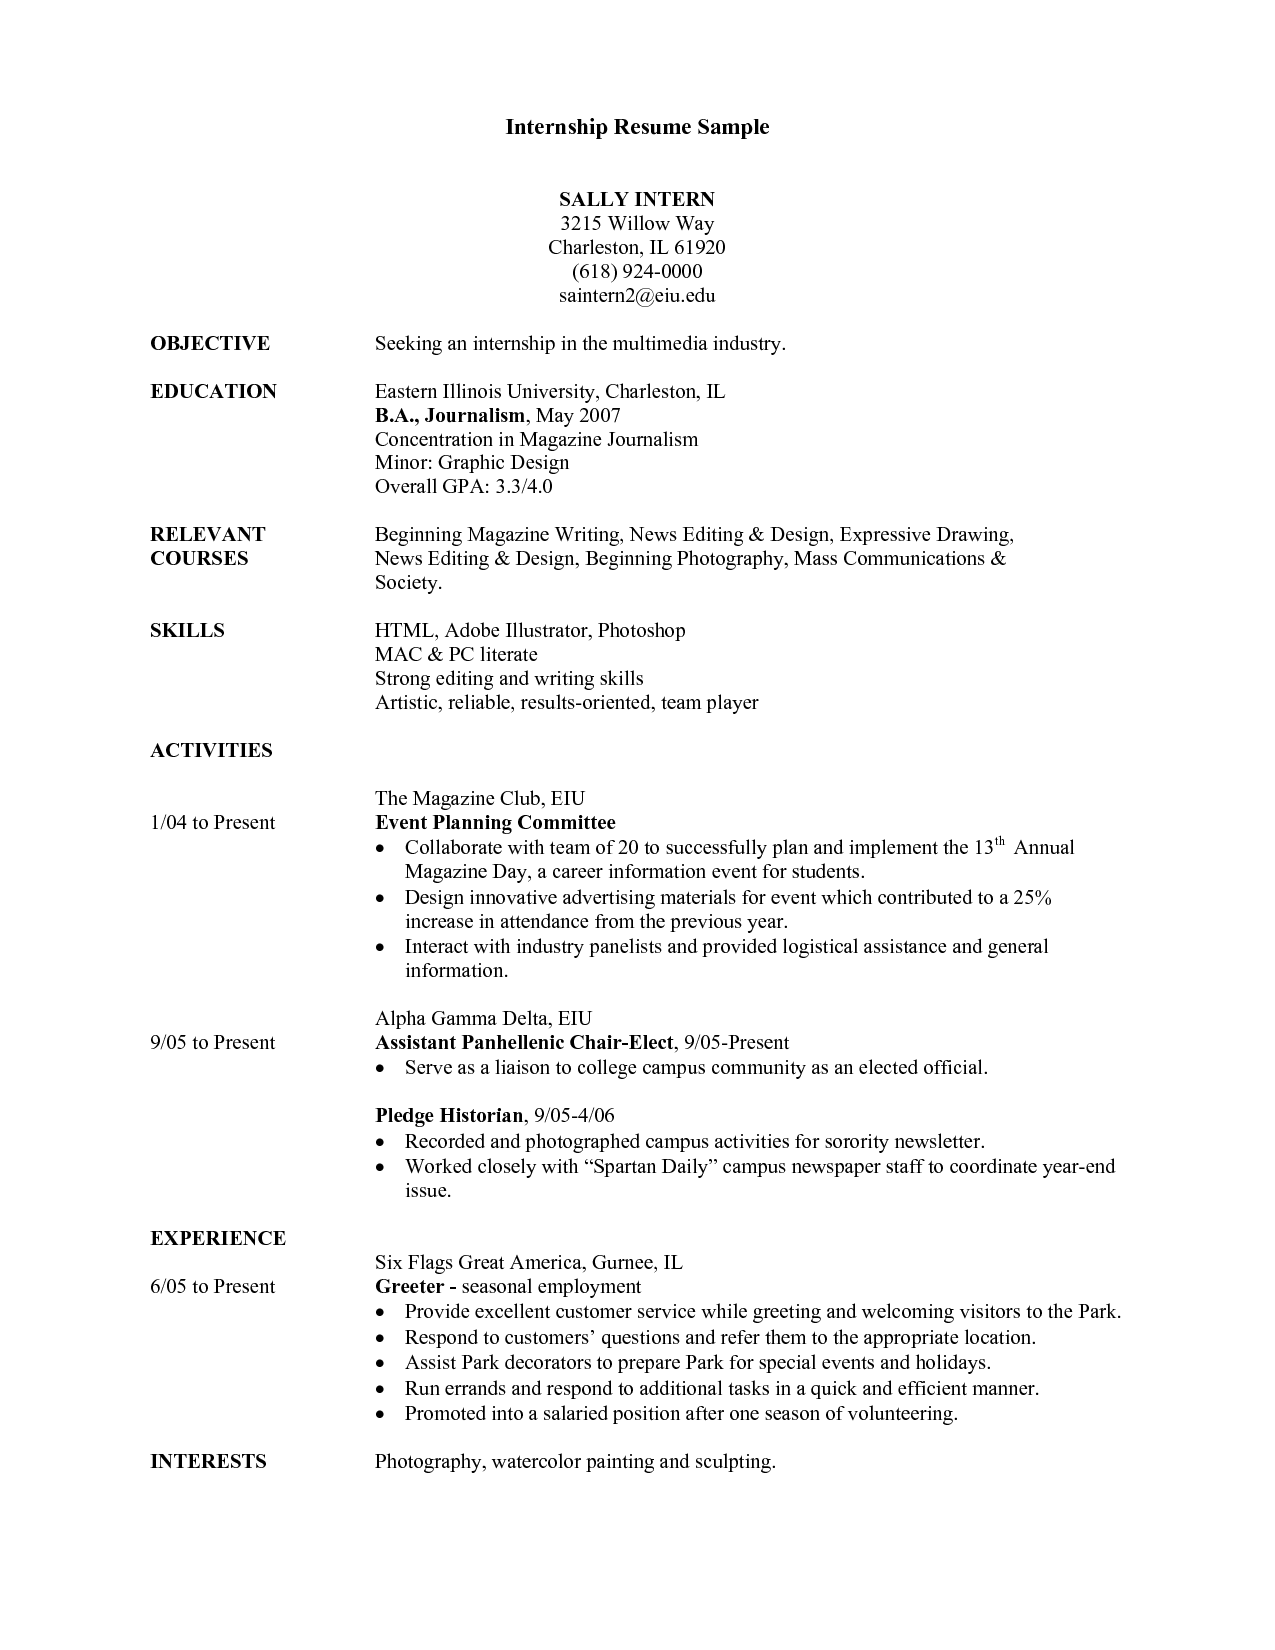 Writing Resume For Internship College Student Resume For Internship Task List Templates